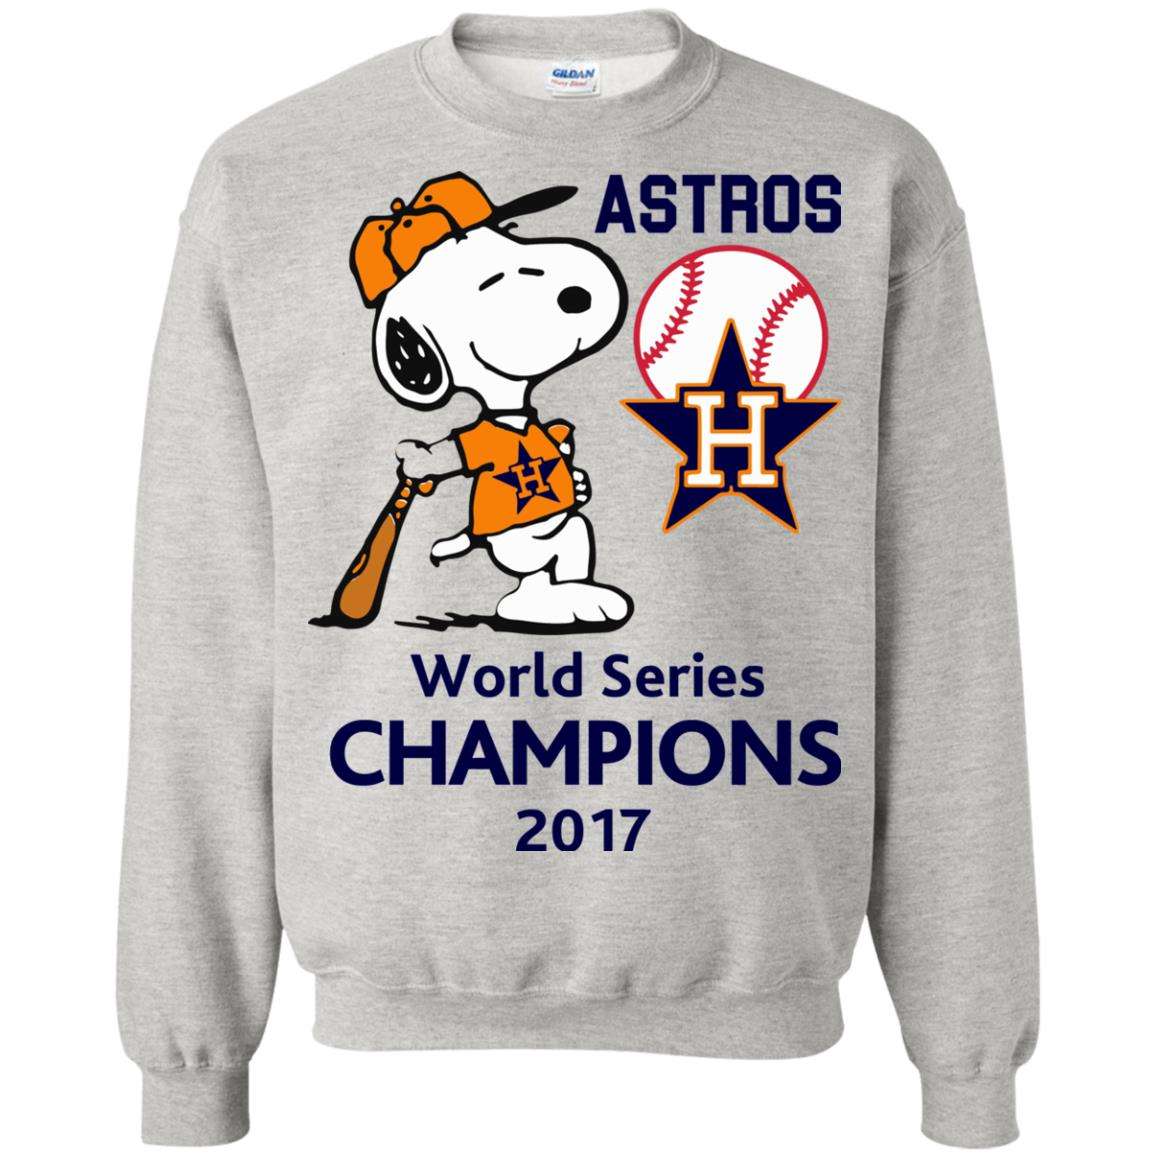 image 957 - Snoopy Astros World Series Champions Shirt, Sweater, Hoodie